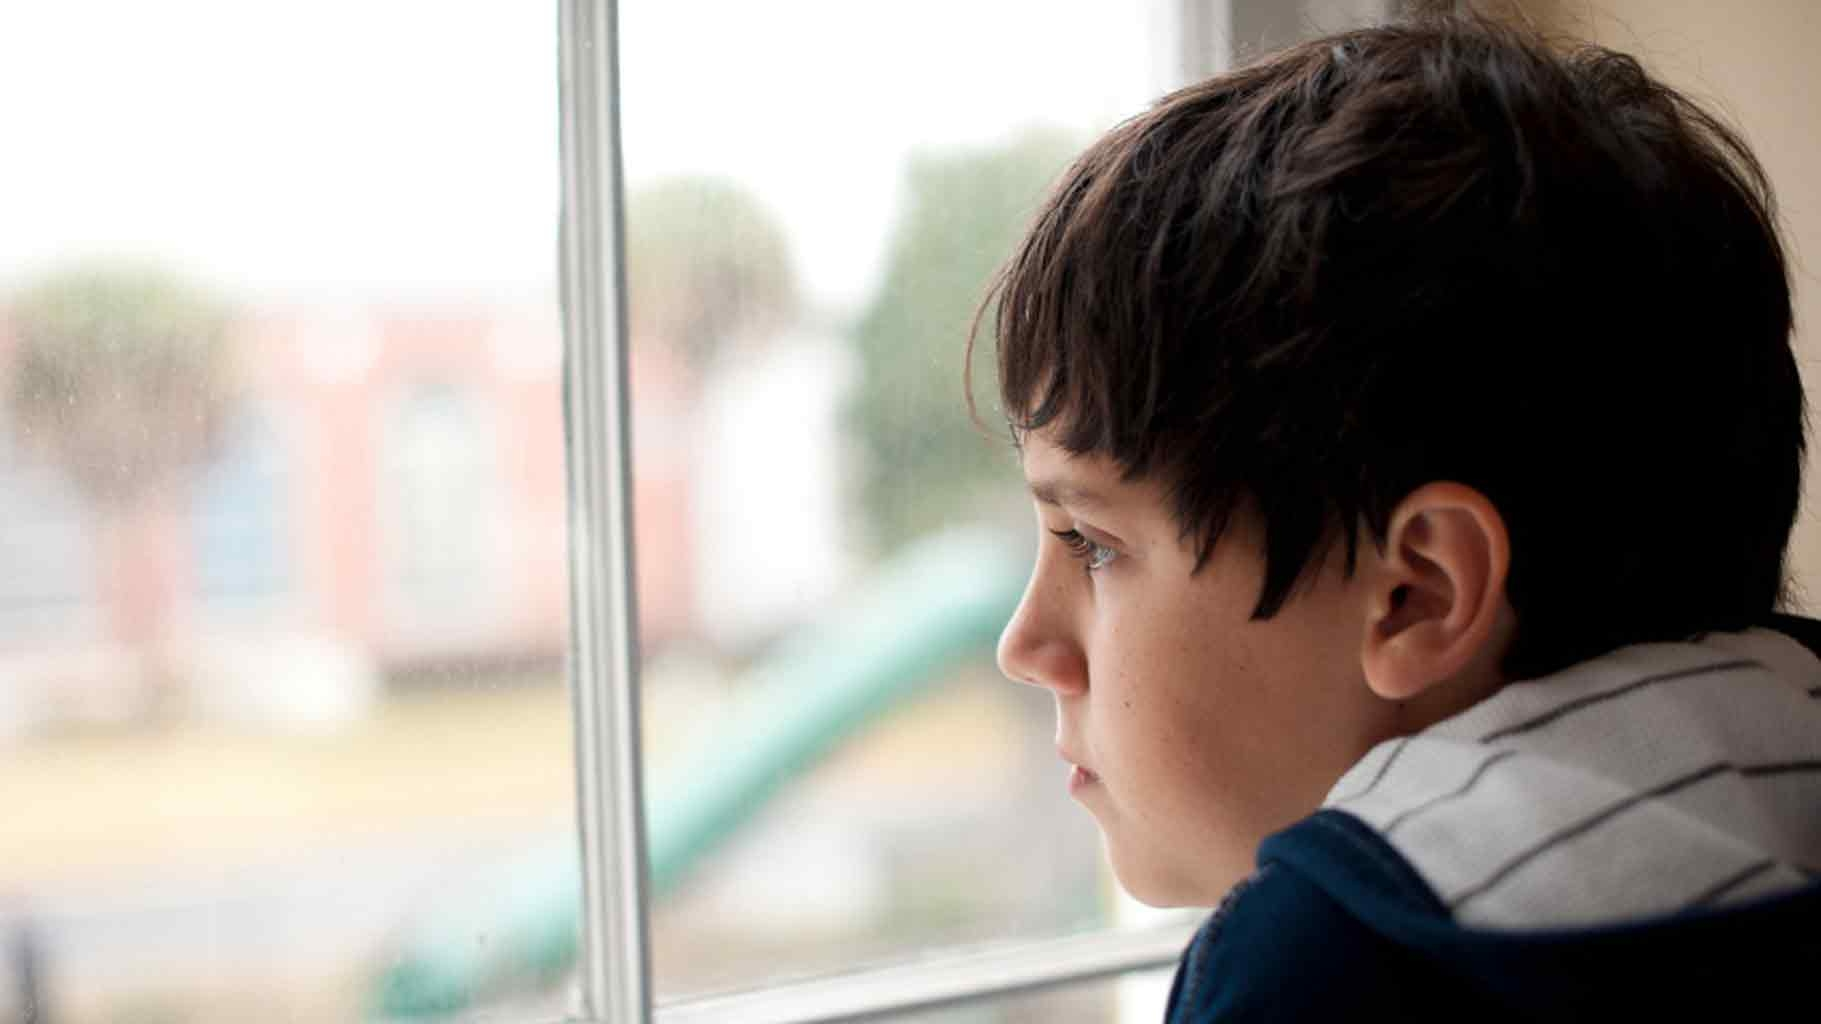 Anxiety, OCD in Children Could Lead to Suicidal Thoughts